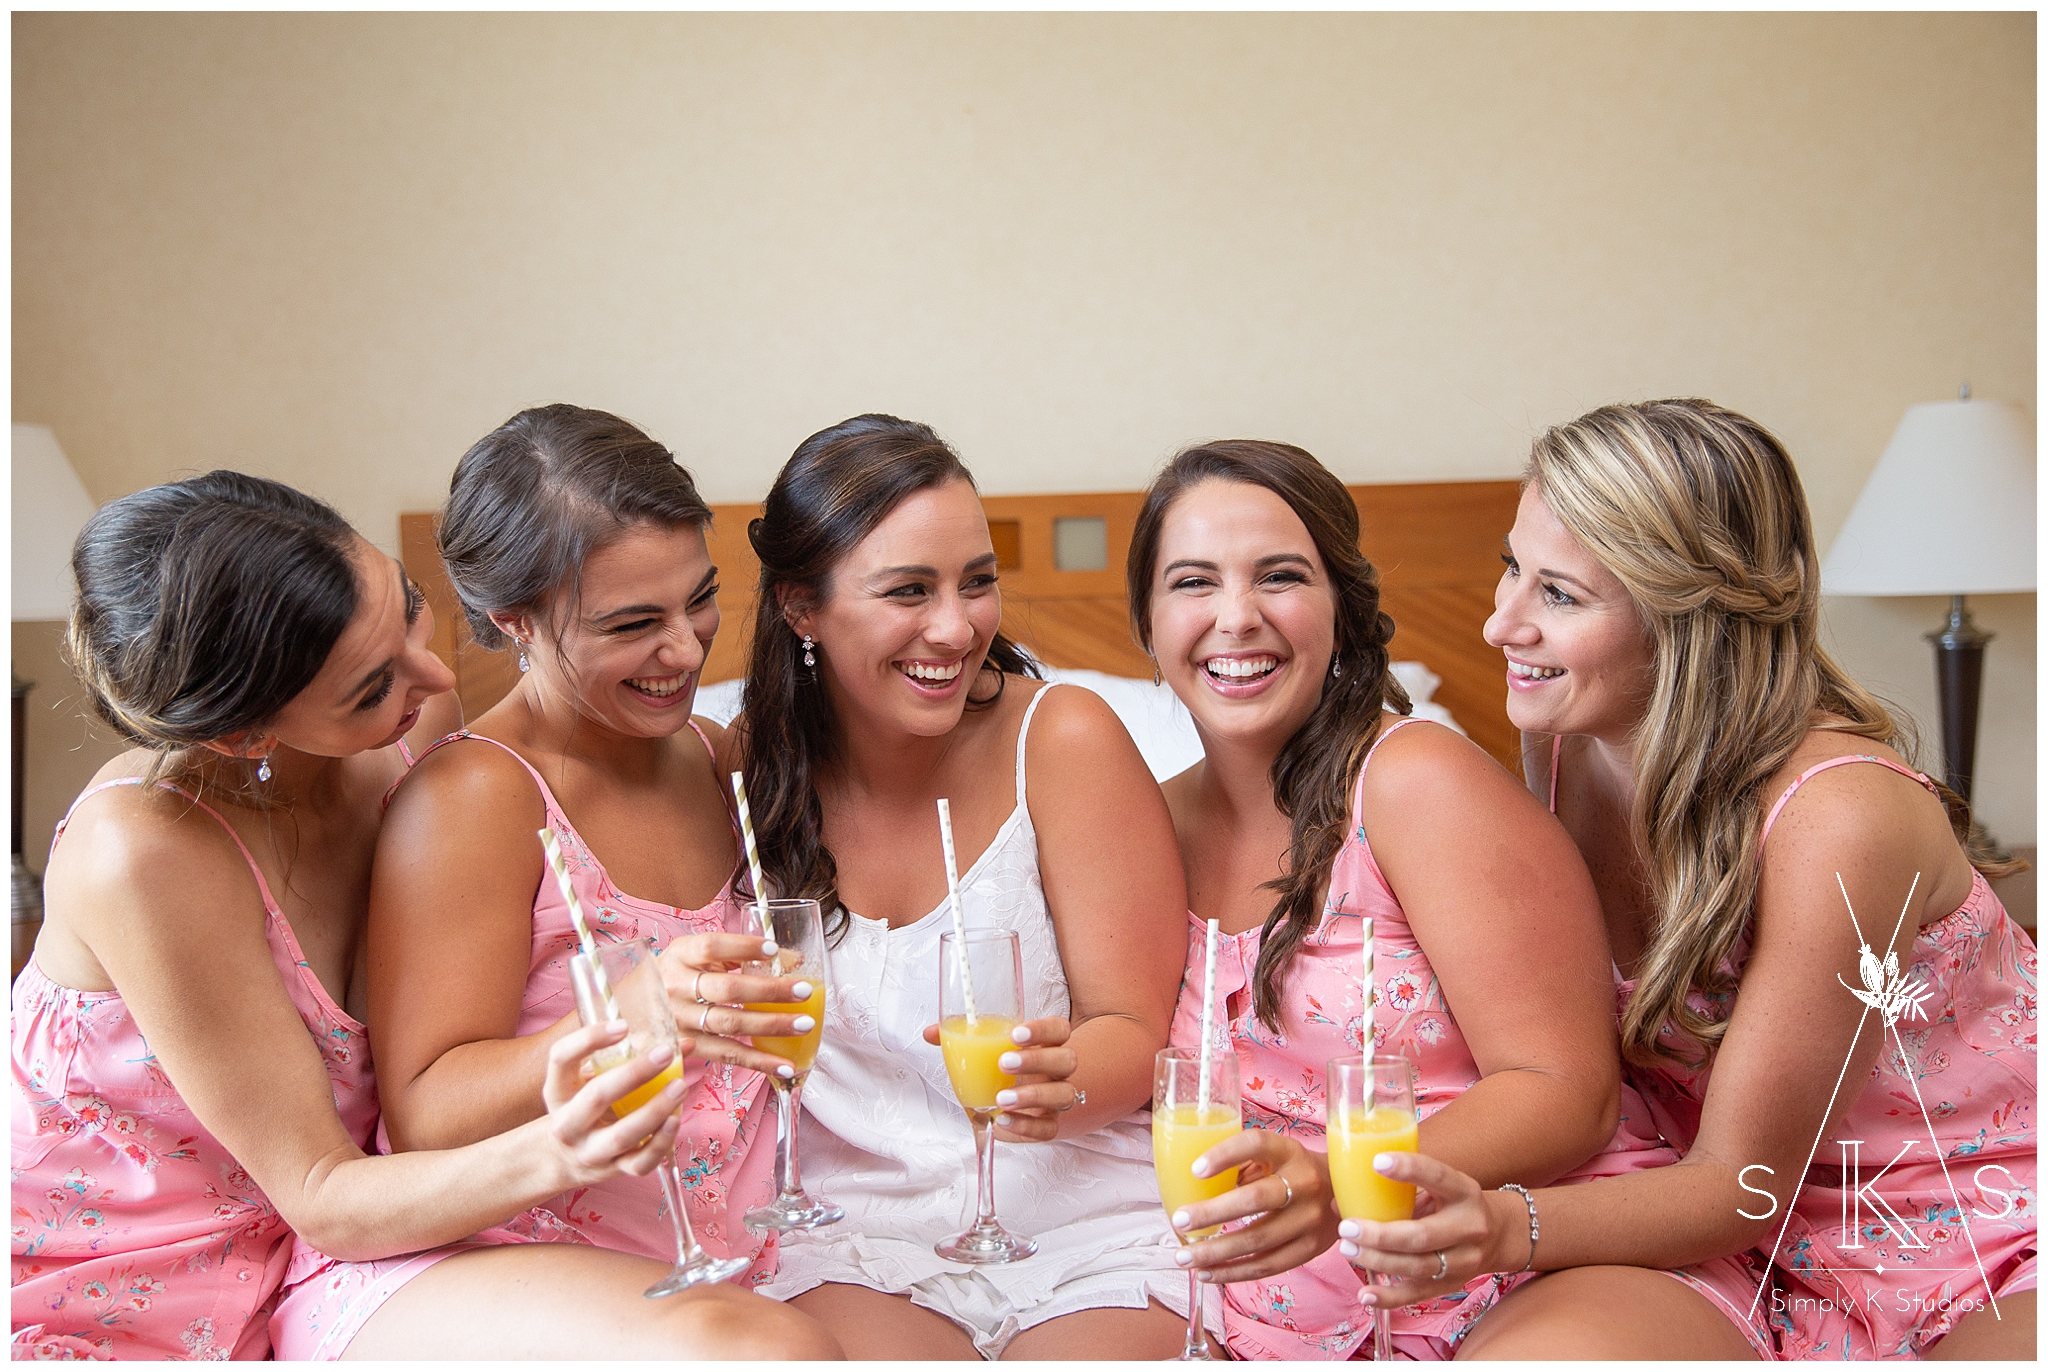 Bridesmaids wearing pink pajamas and drinking mimosas